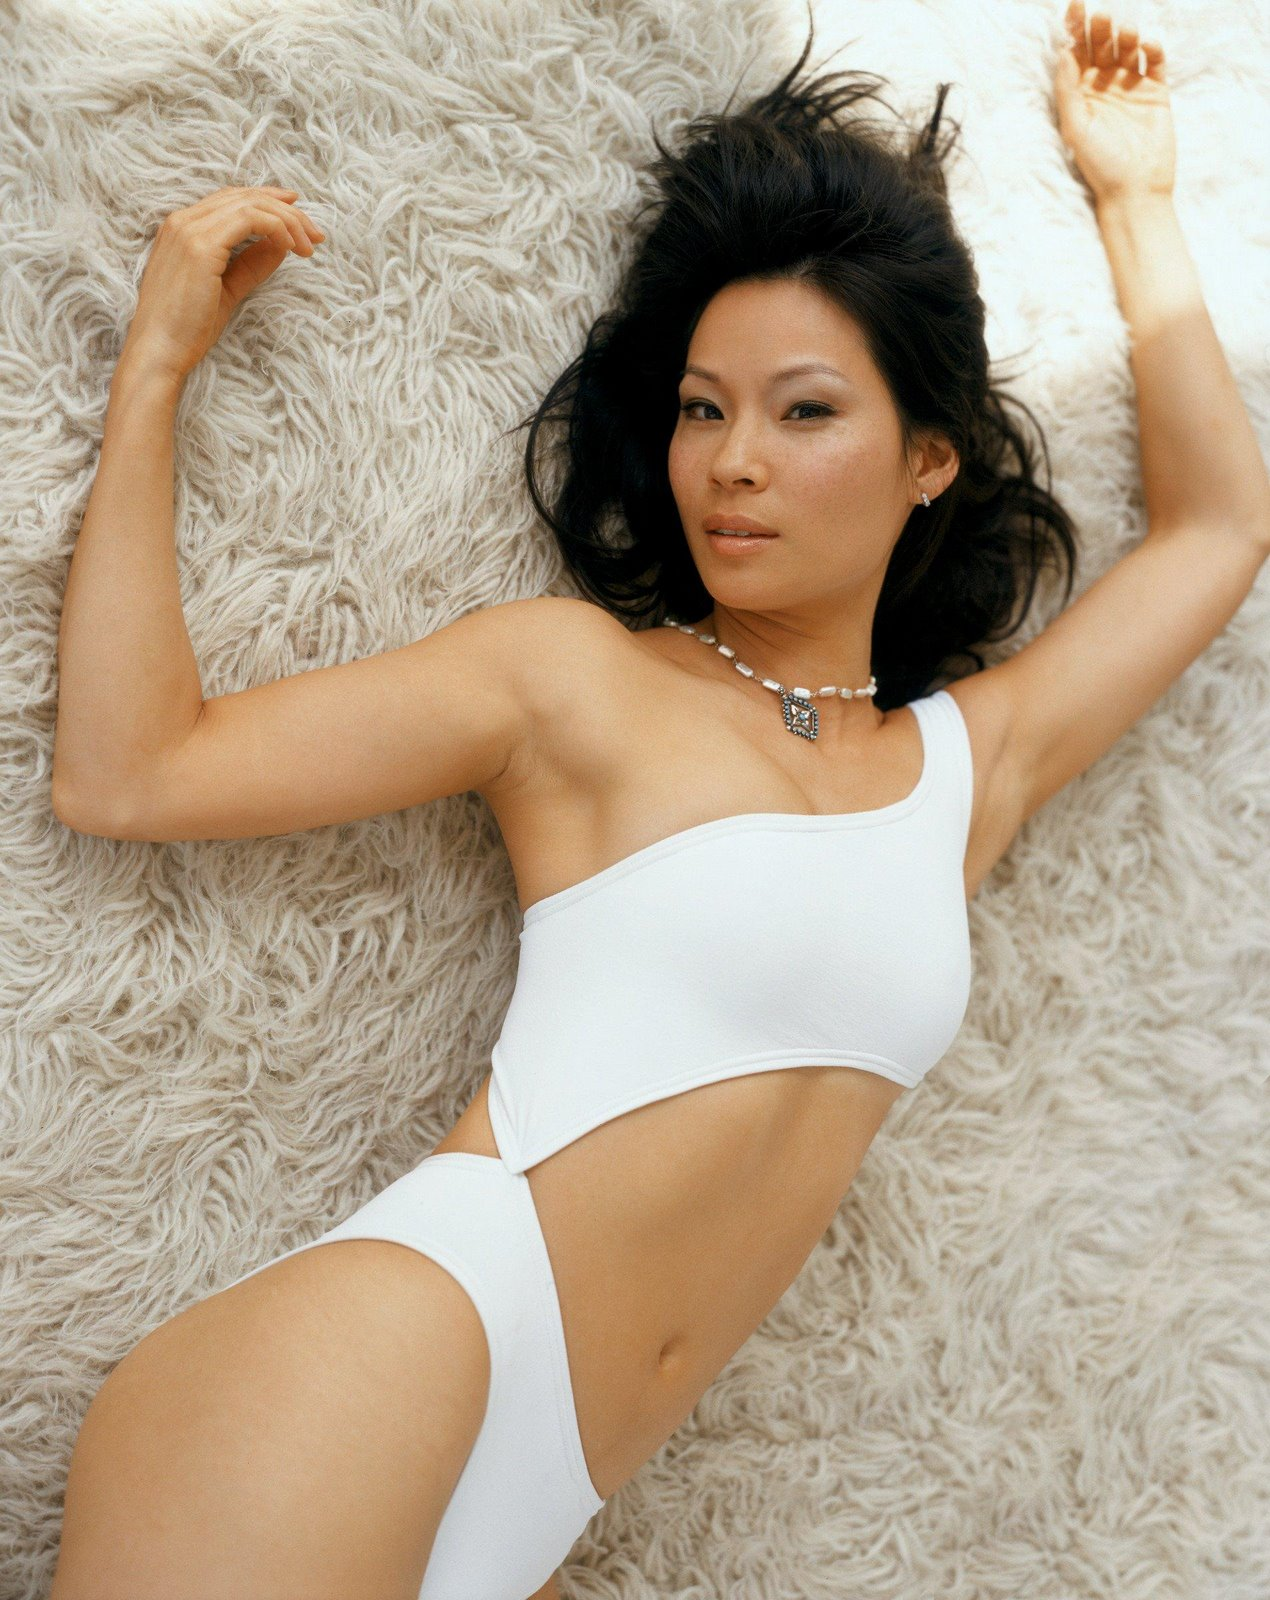 lucy liu 10 ... and force 95 year old grandmothers to take off their adult diapers?